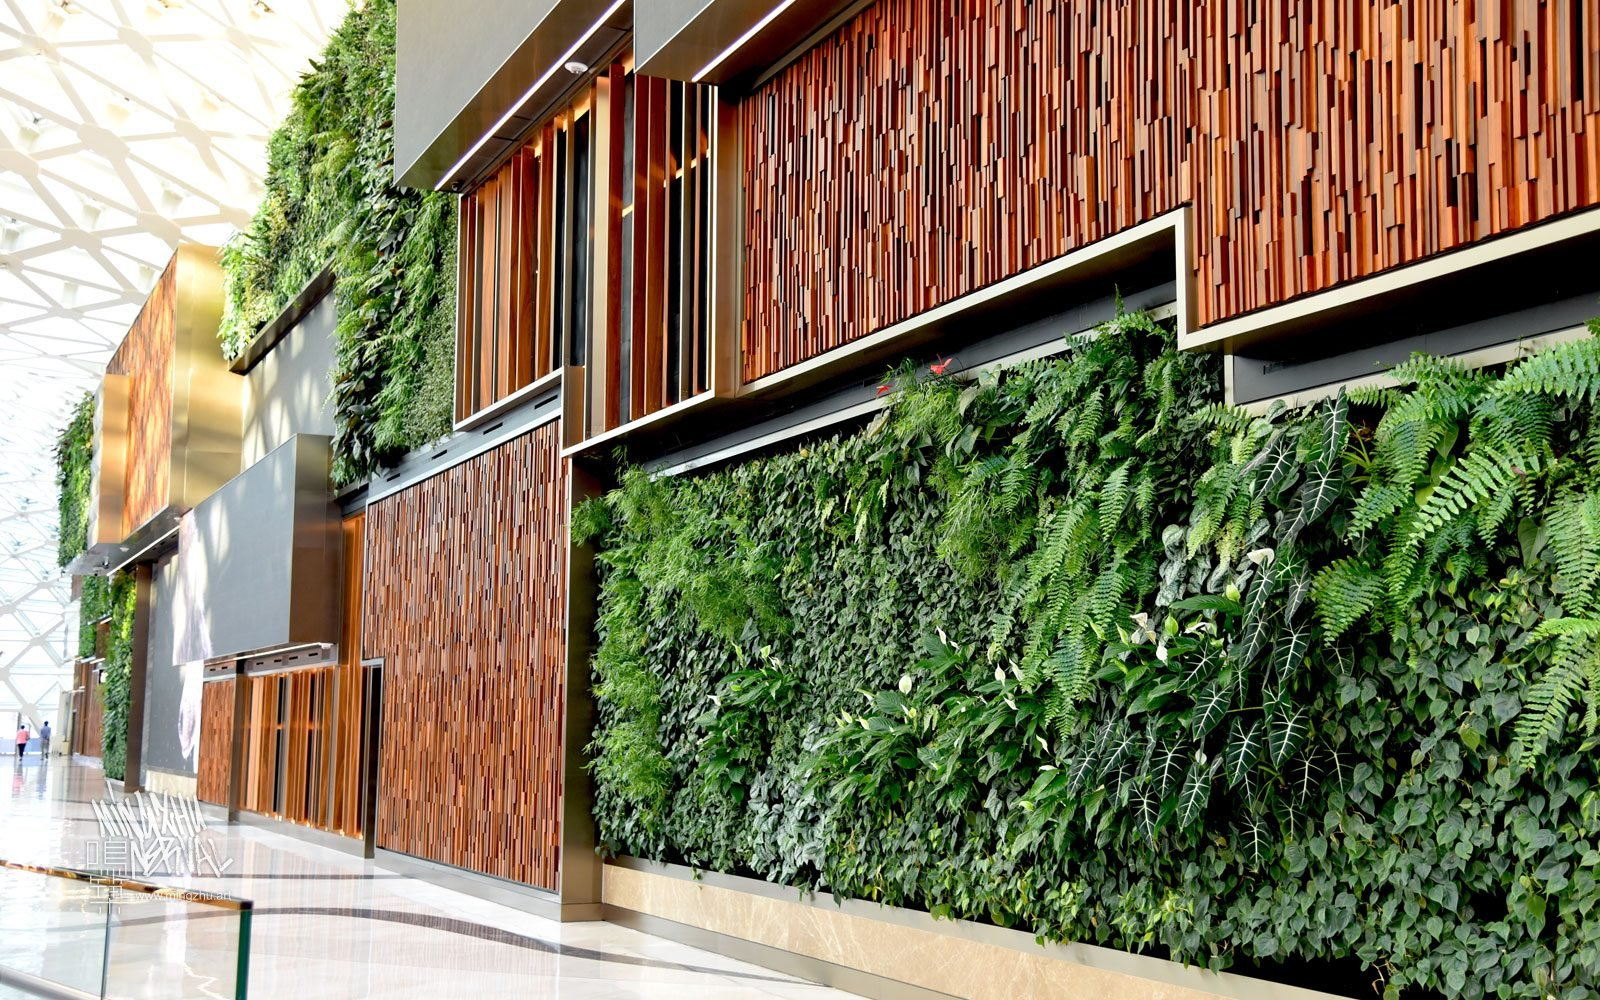 At Mingzhu Nerval, we thrive at creating the most beautiful vertical gardens in the world. For the Nature's Art MGM Cotai, we created a huge living wall design - Macao, 2018.